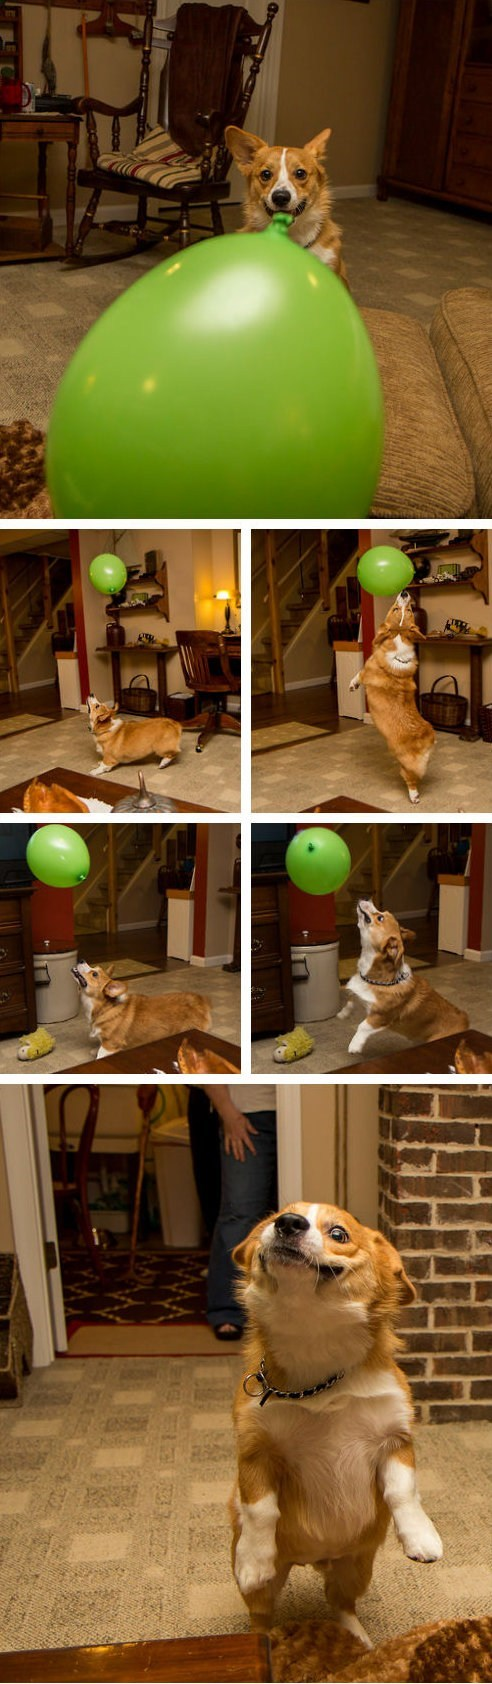 otis,balloon-chasing dog,green balloon,corgi,dogs